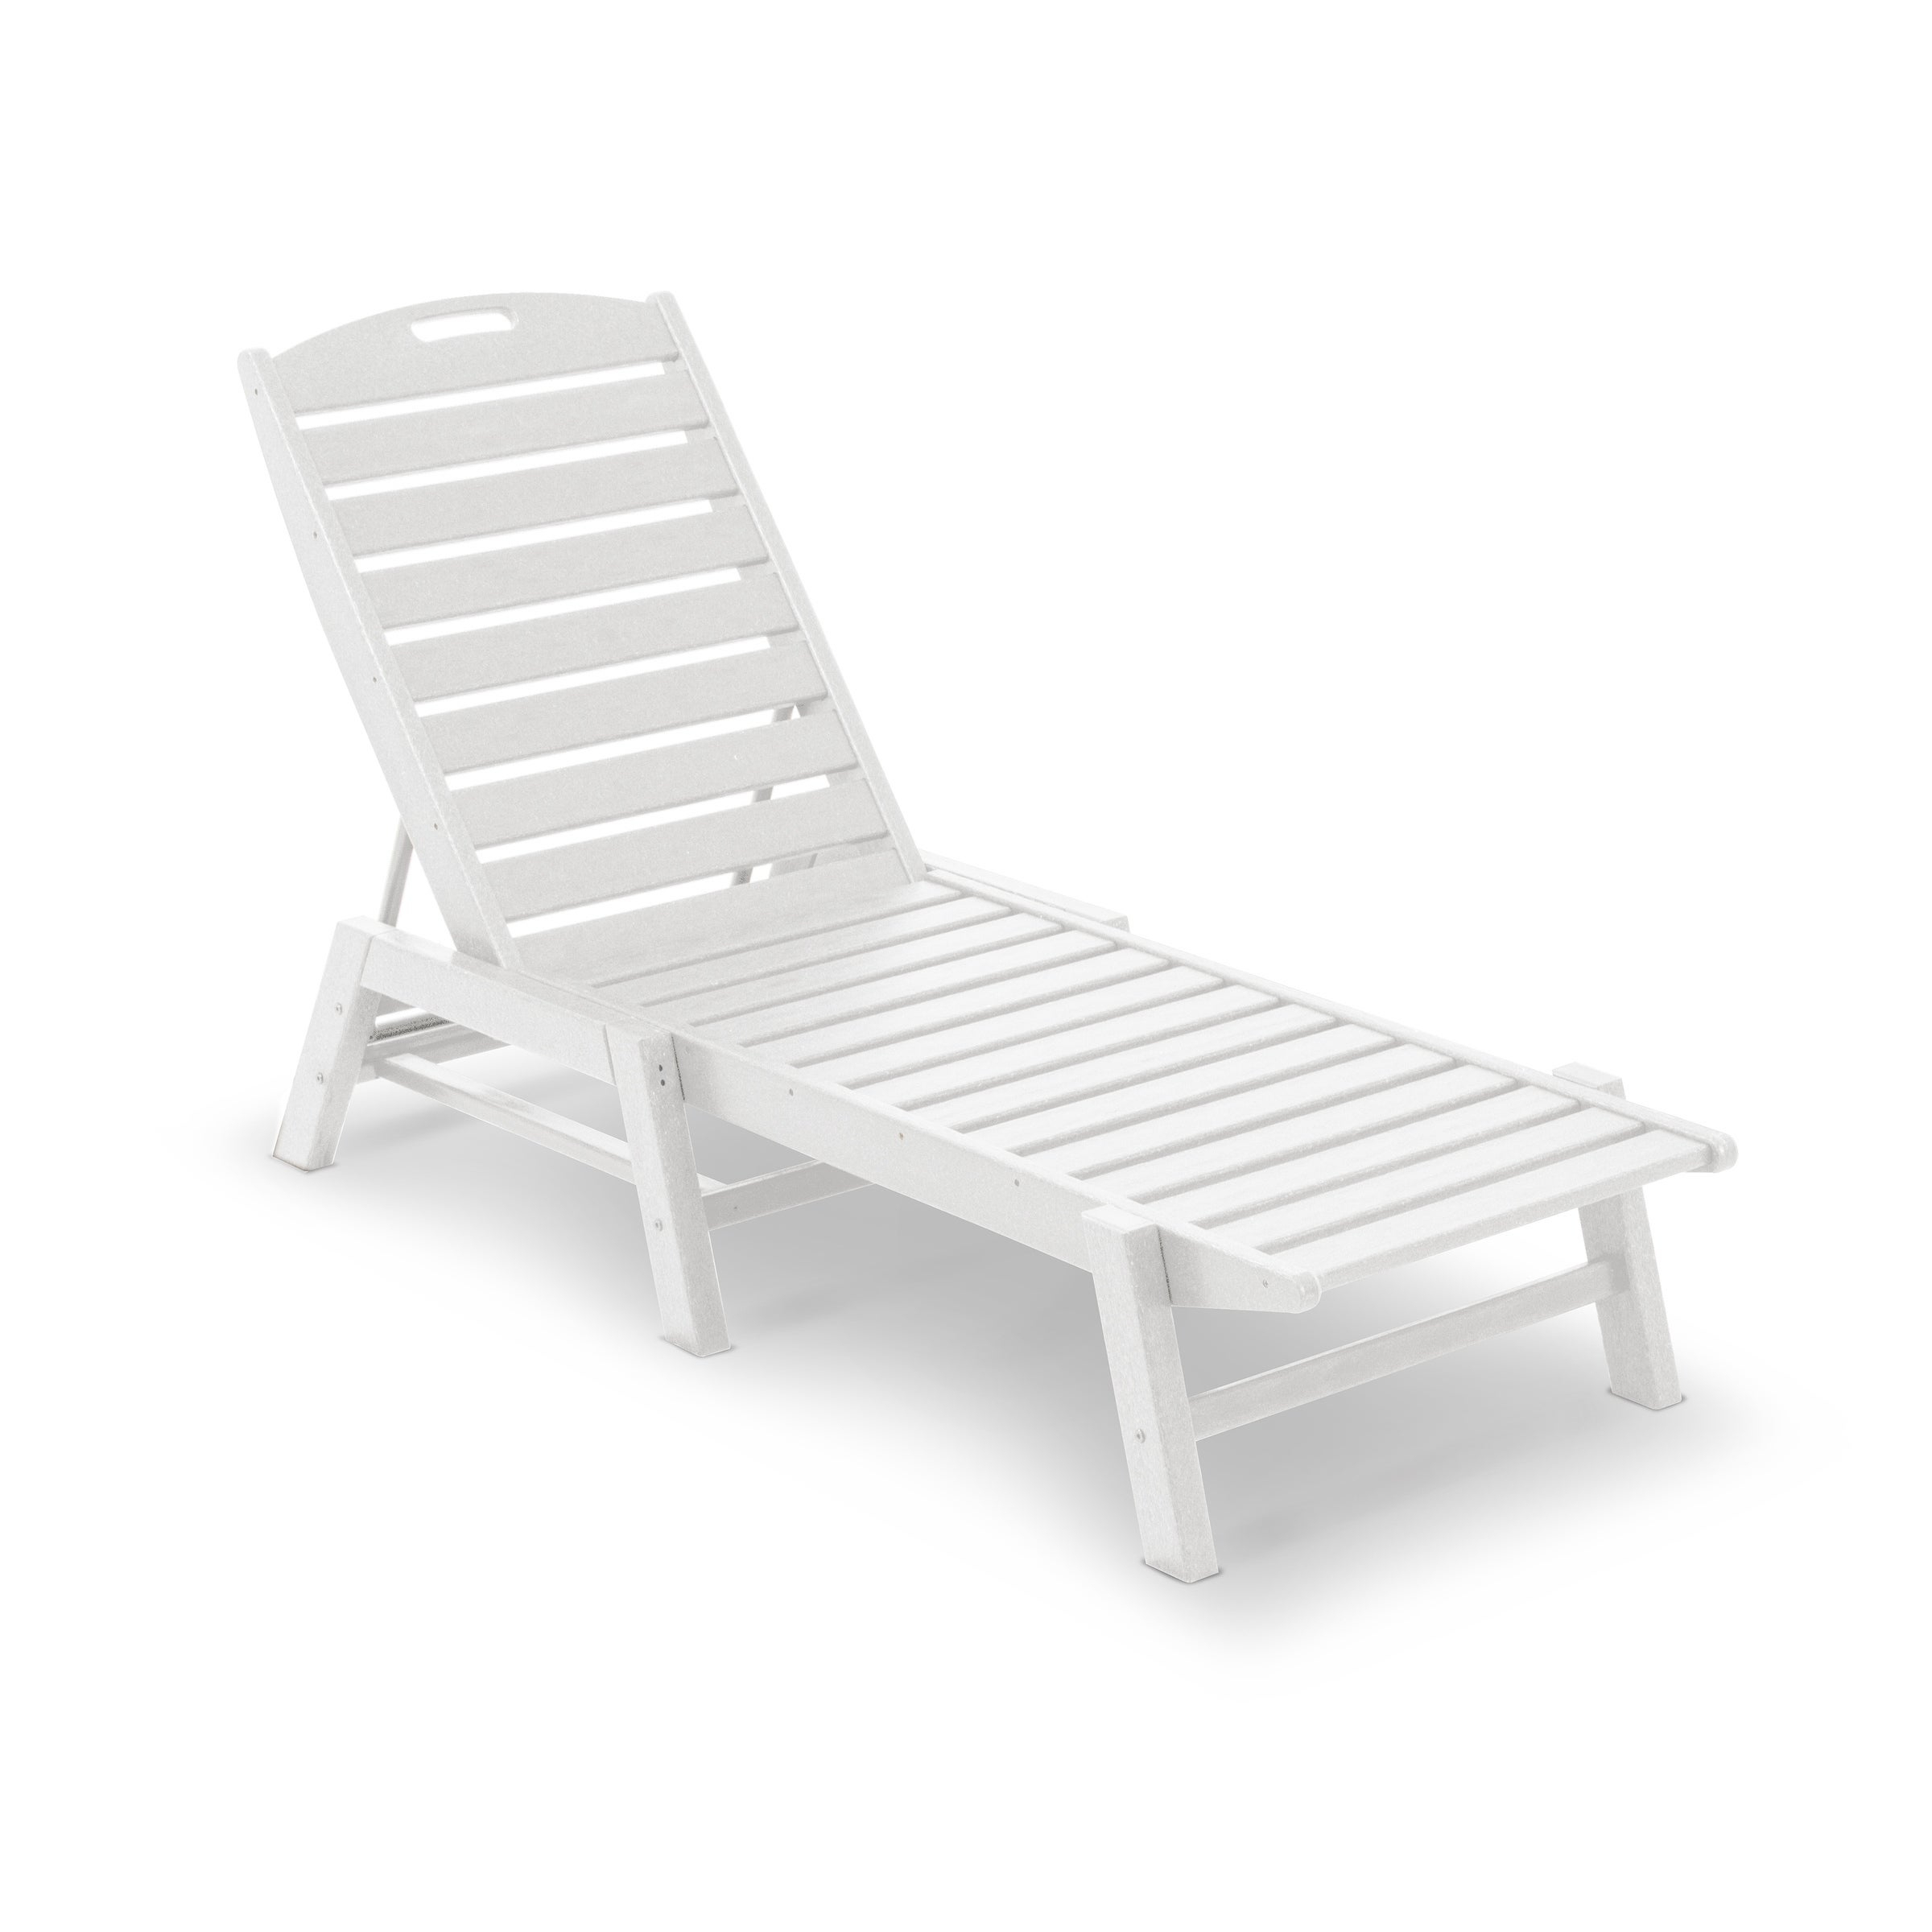 Polywood® Nautical Outdoor Chaise Lounge, Stackable In 2019 Nautical Outdoor Chaise Lounges With Arms (View 17 of 25)